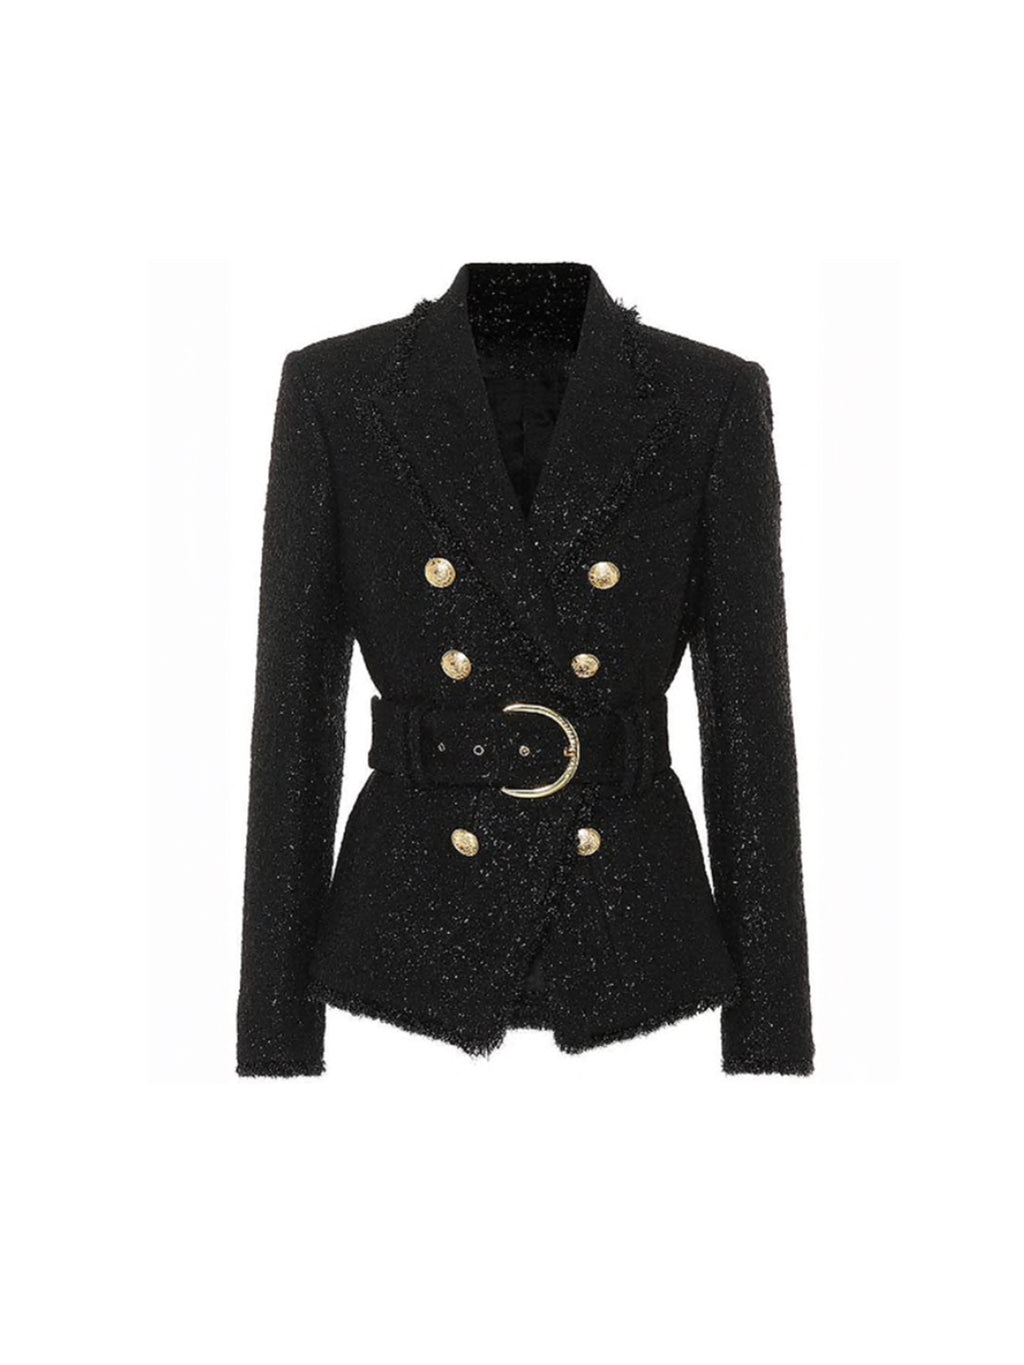 DOUBLE BREASTED GLITTERY BELTED BLAZER WITH GOLD BUTTONS